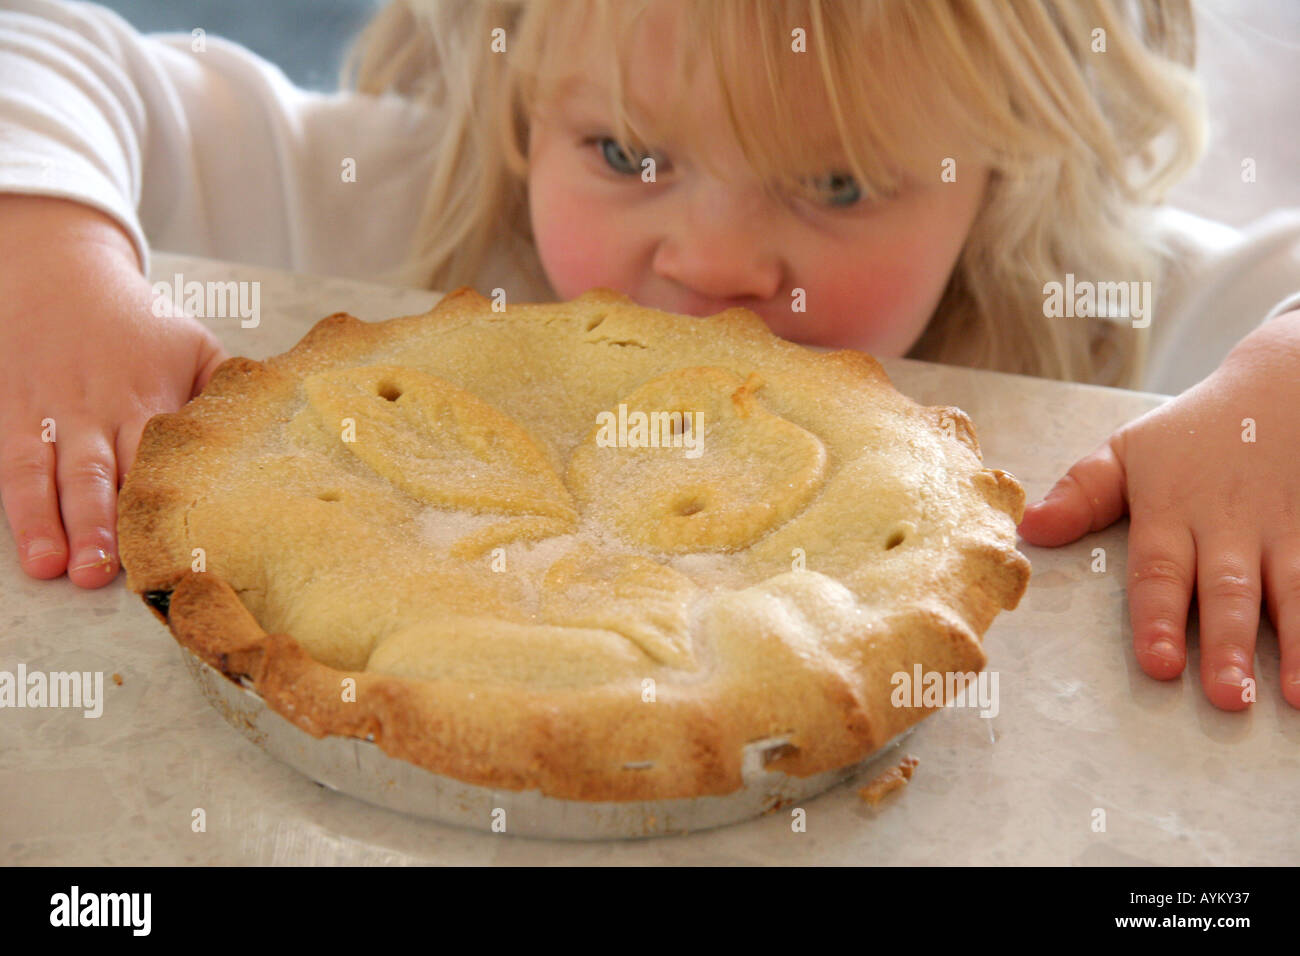 young girl stealing apple pie - Stock Image